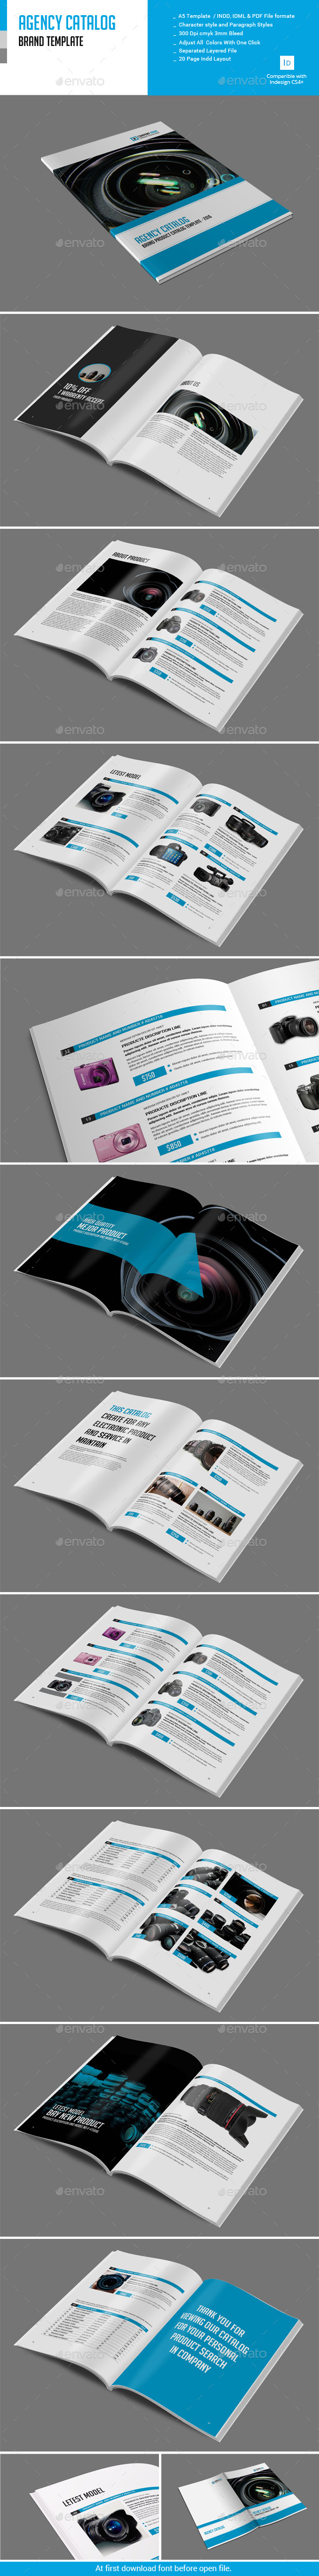 GraphicRiver Agency Calalog Brand Template 10995718